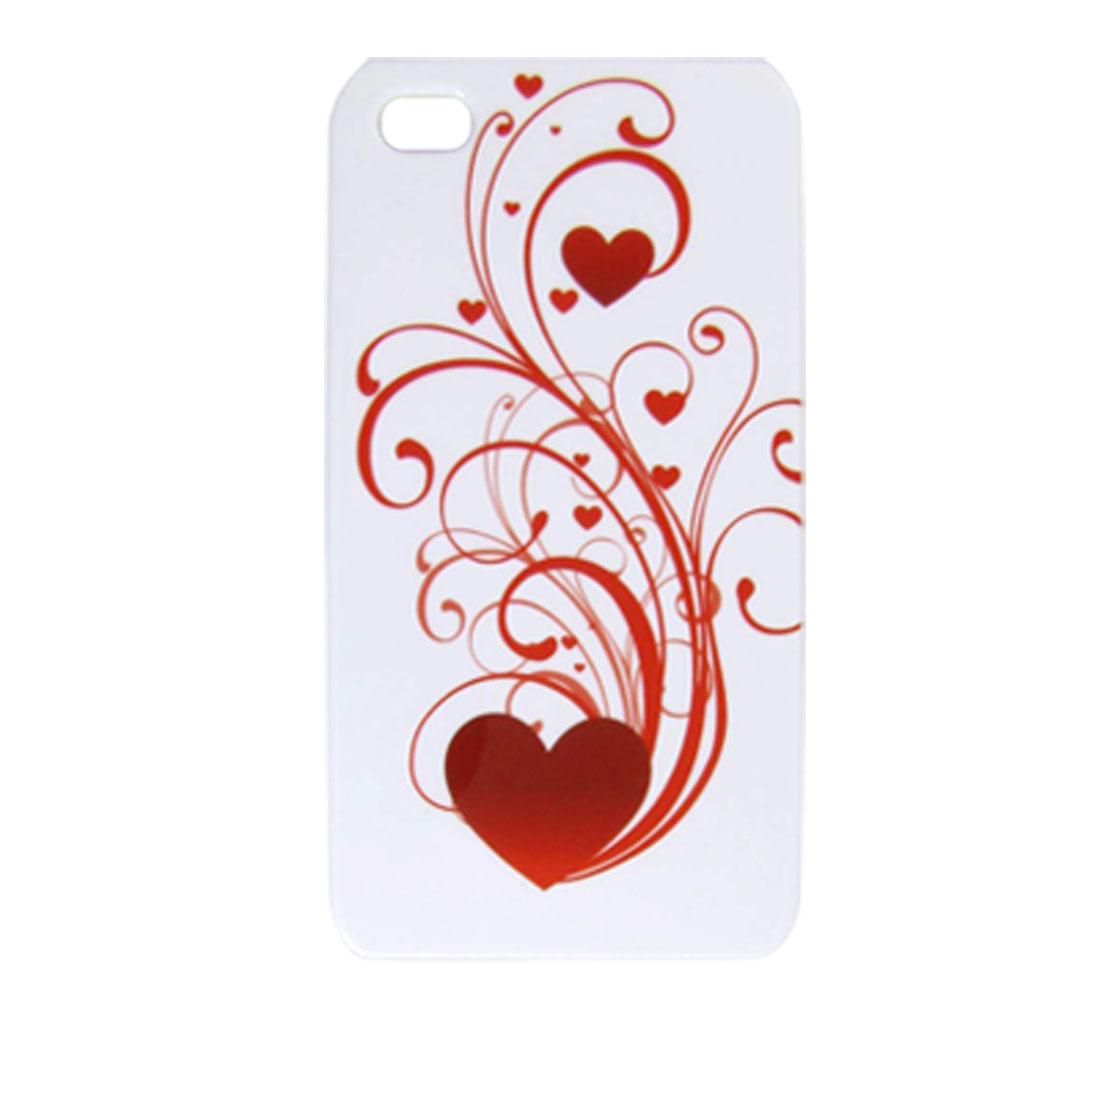 Hard Plastic Red Hearts White Base Back Case for iPhone 4 4G